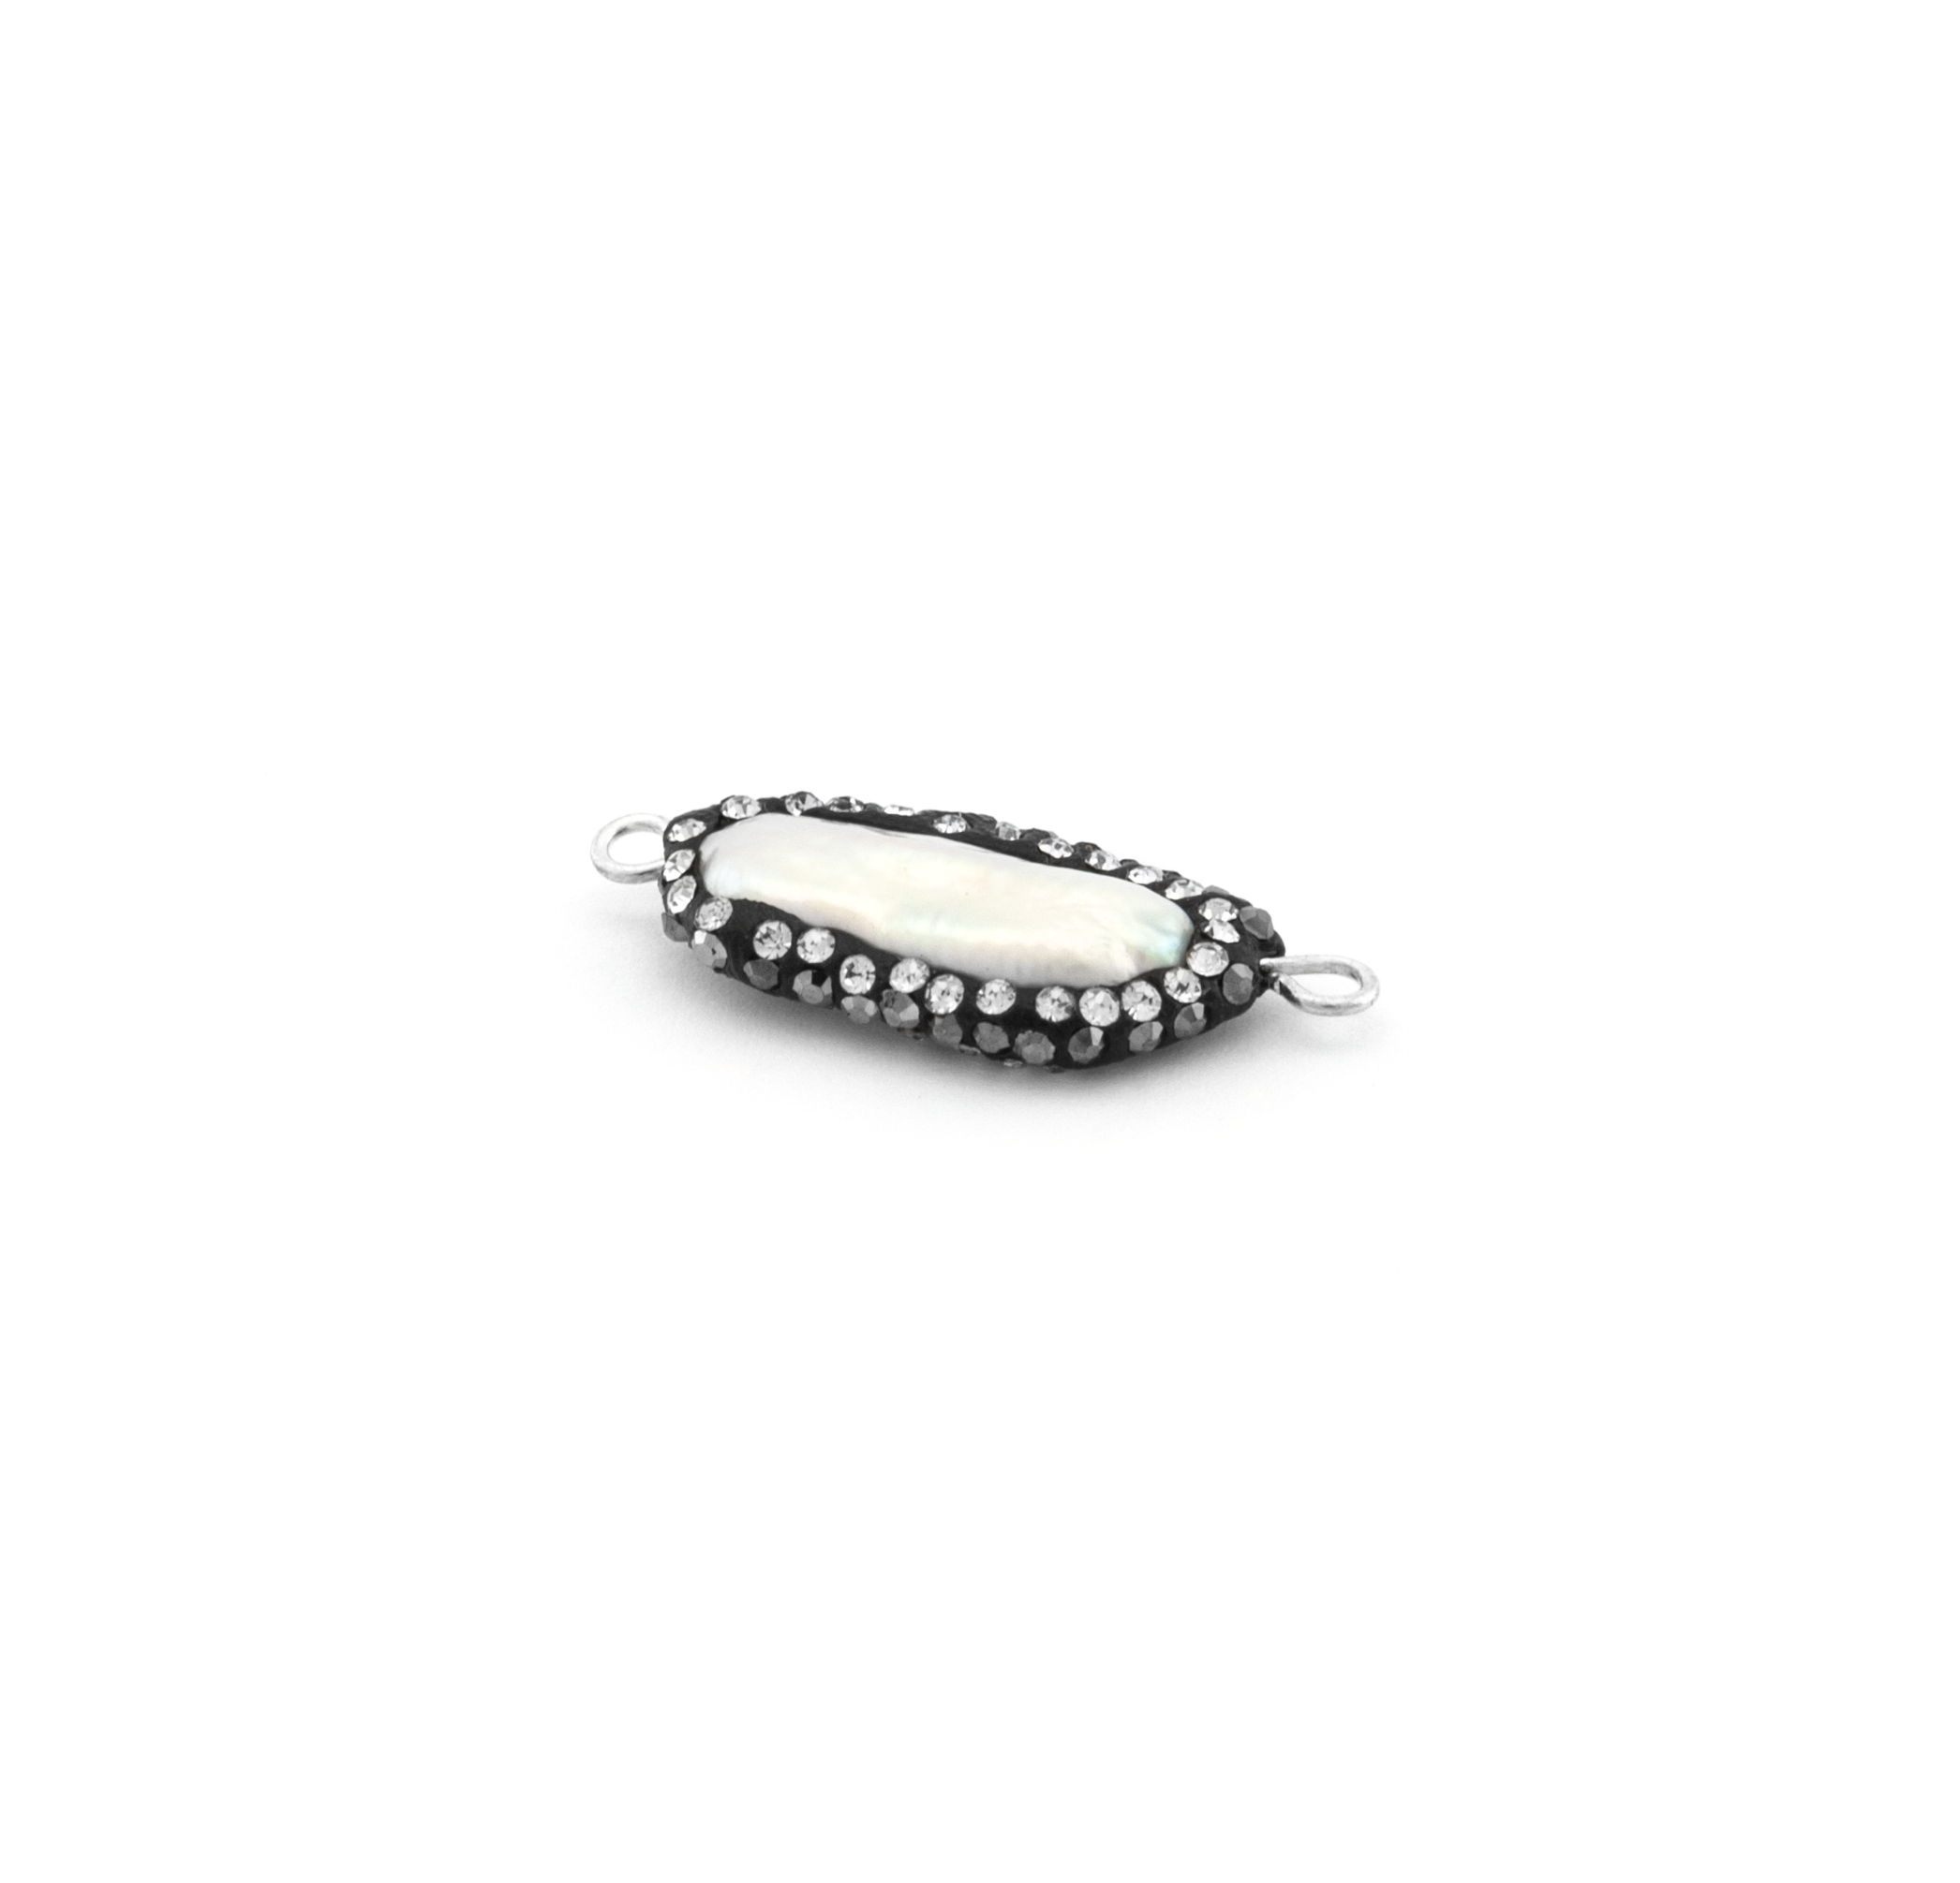 FRESH WATER PEARL WITH STRASS 13x22mm